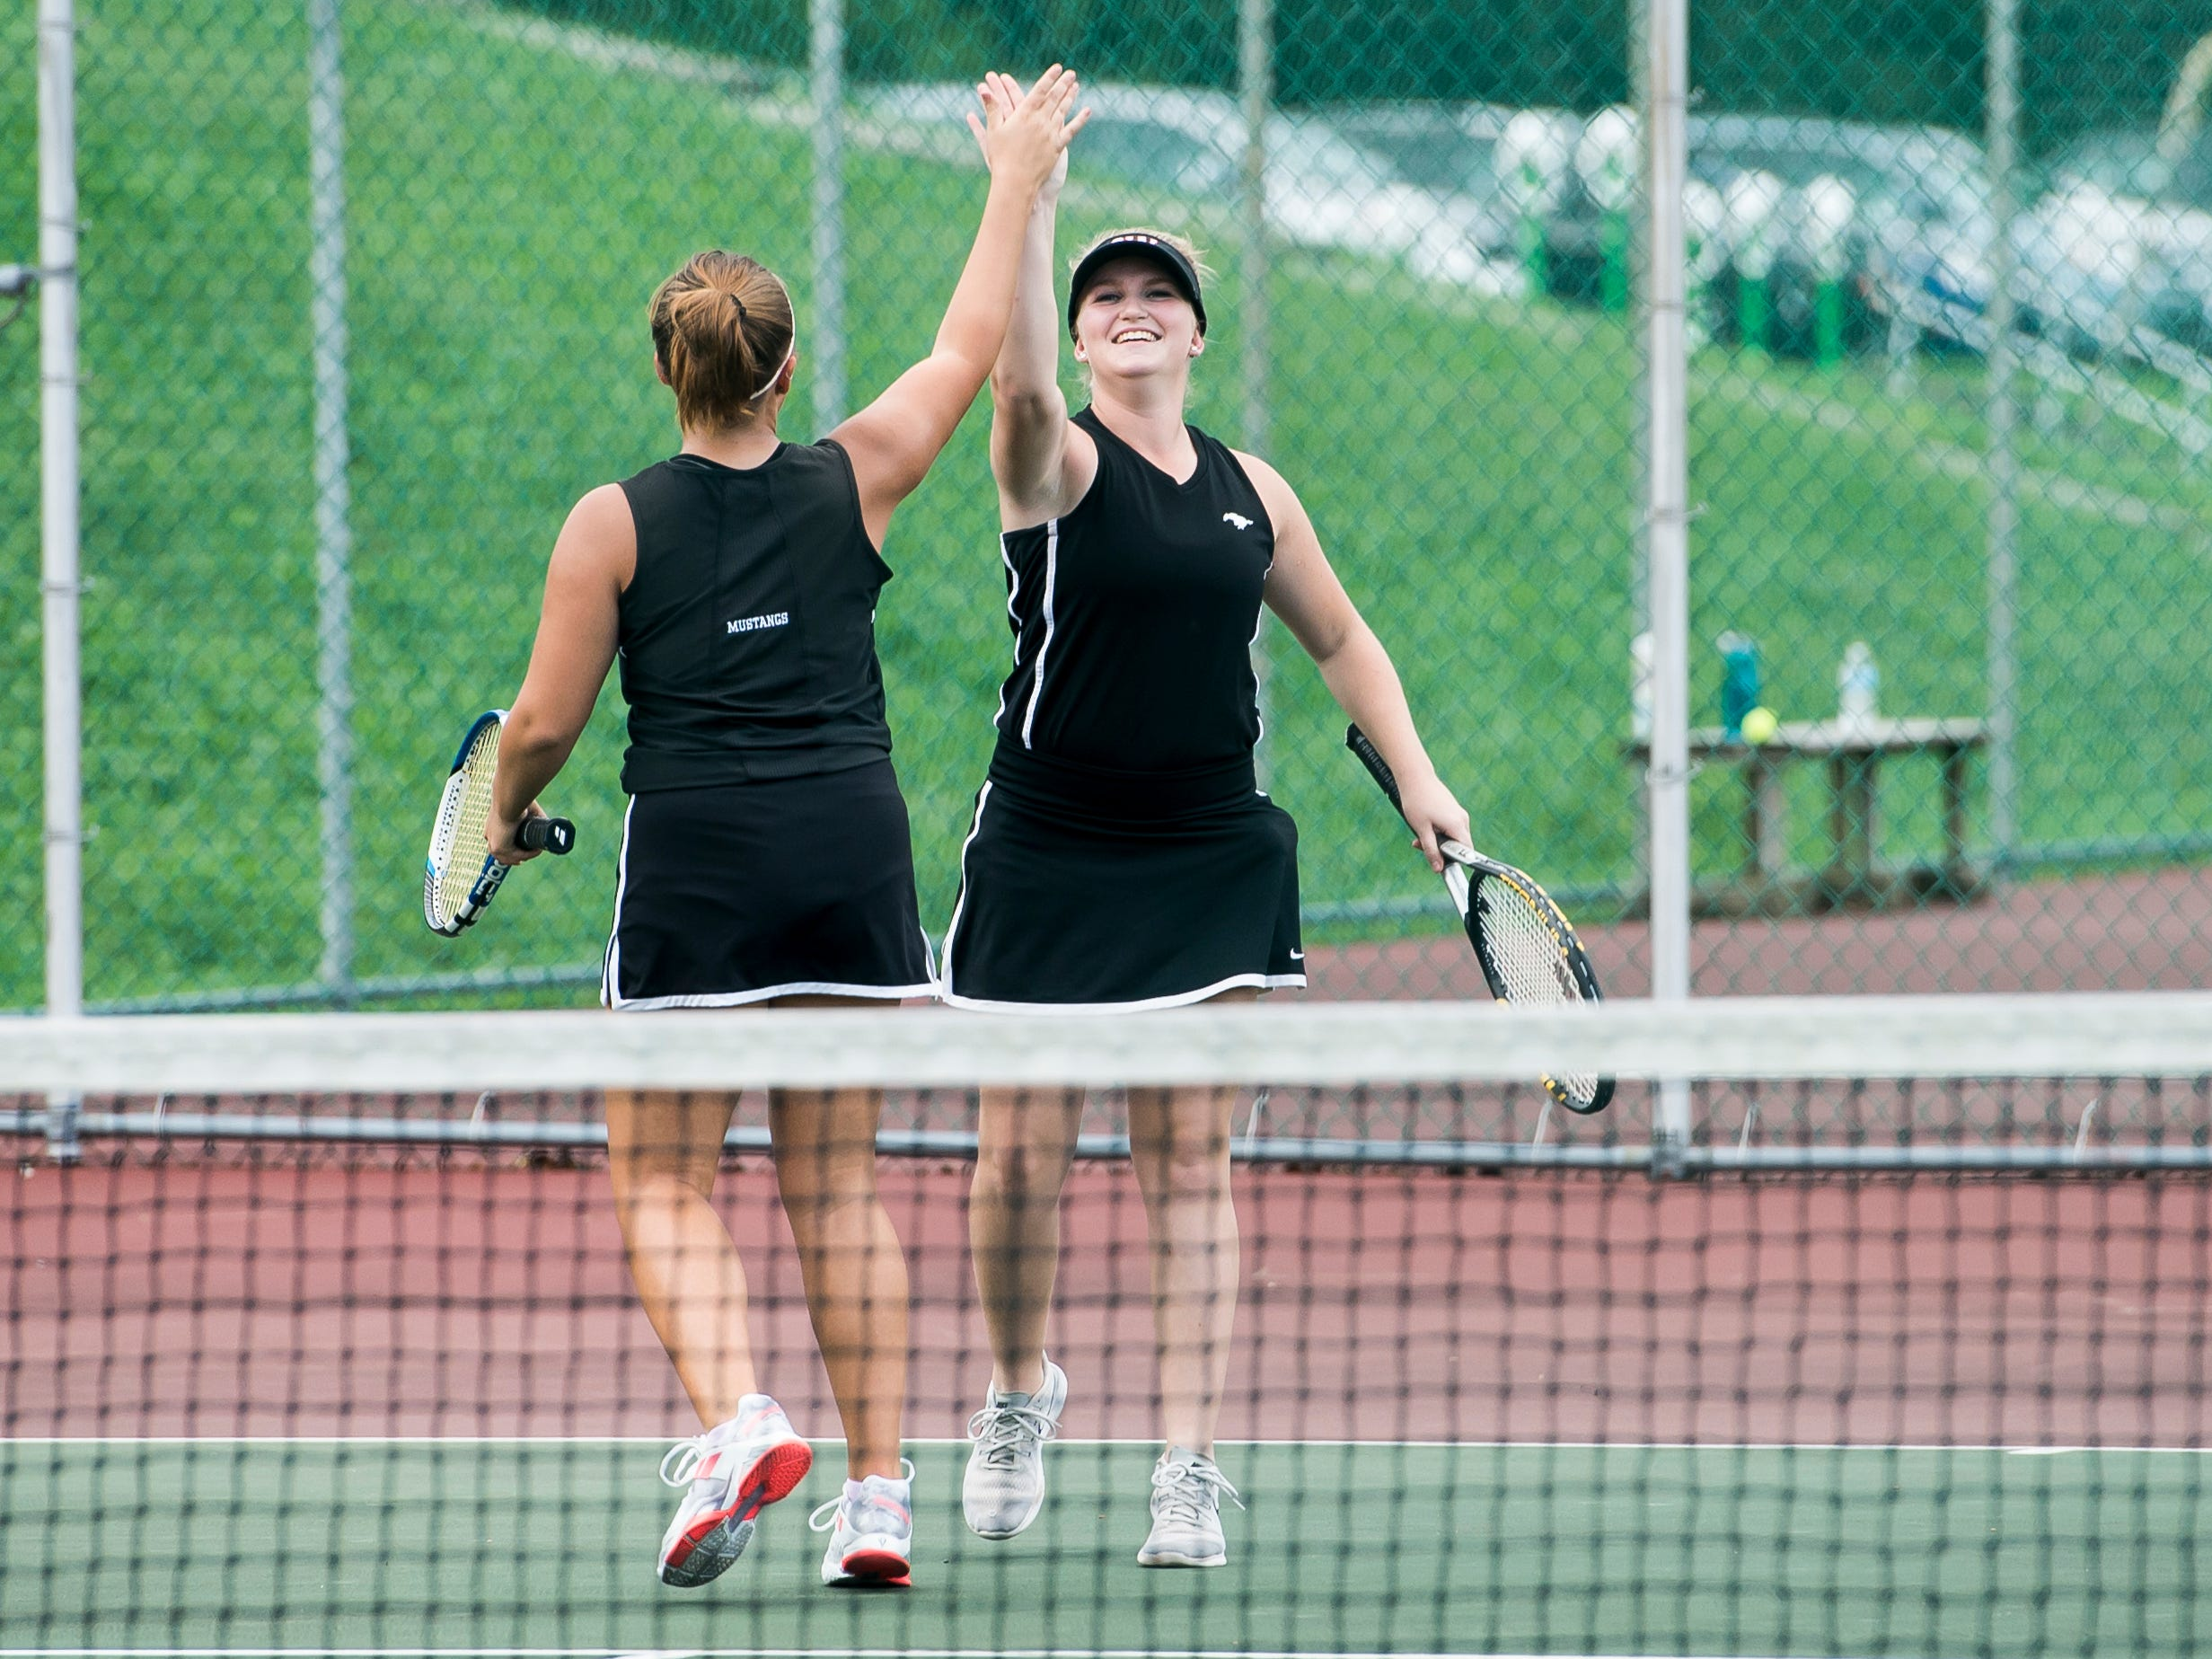 South Western's Sydney Zepp, right, and Sarah McComas, playing in the No. 1 doubles match, high-five after winning a point against New Oxford on Wednesday, September 26, 2018. The match had to be postponed due to rain and was finished on October 2.